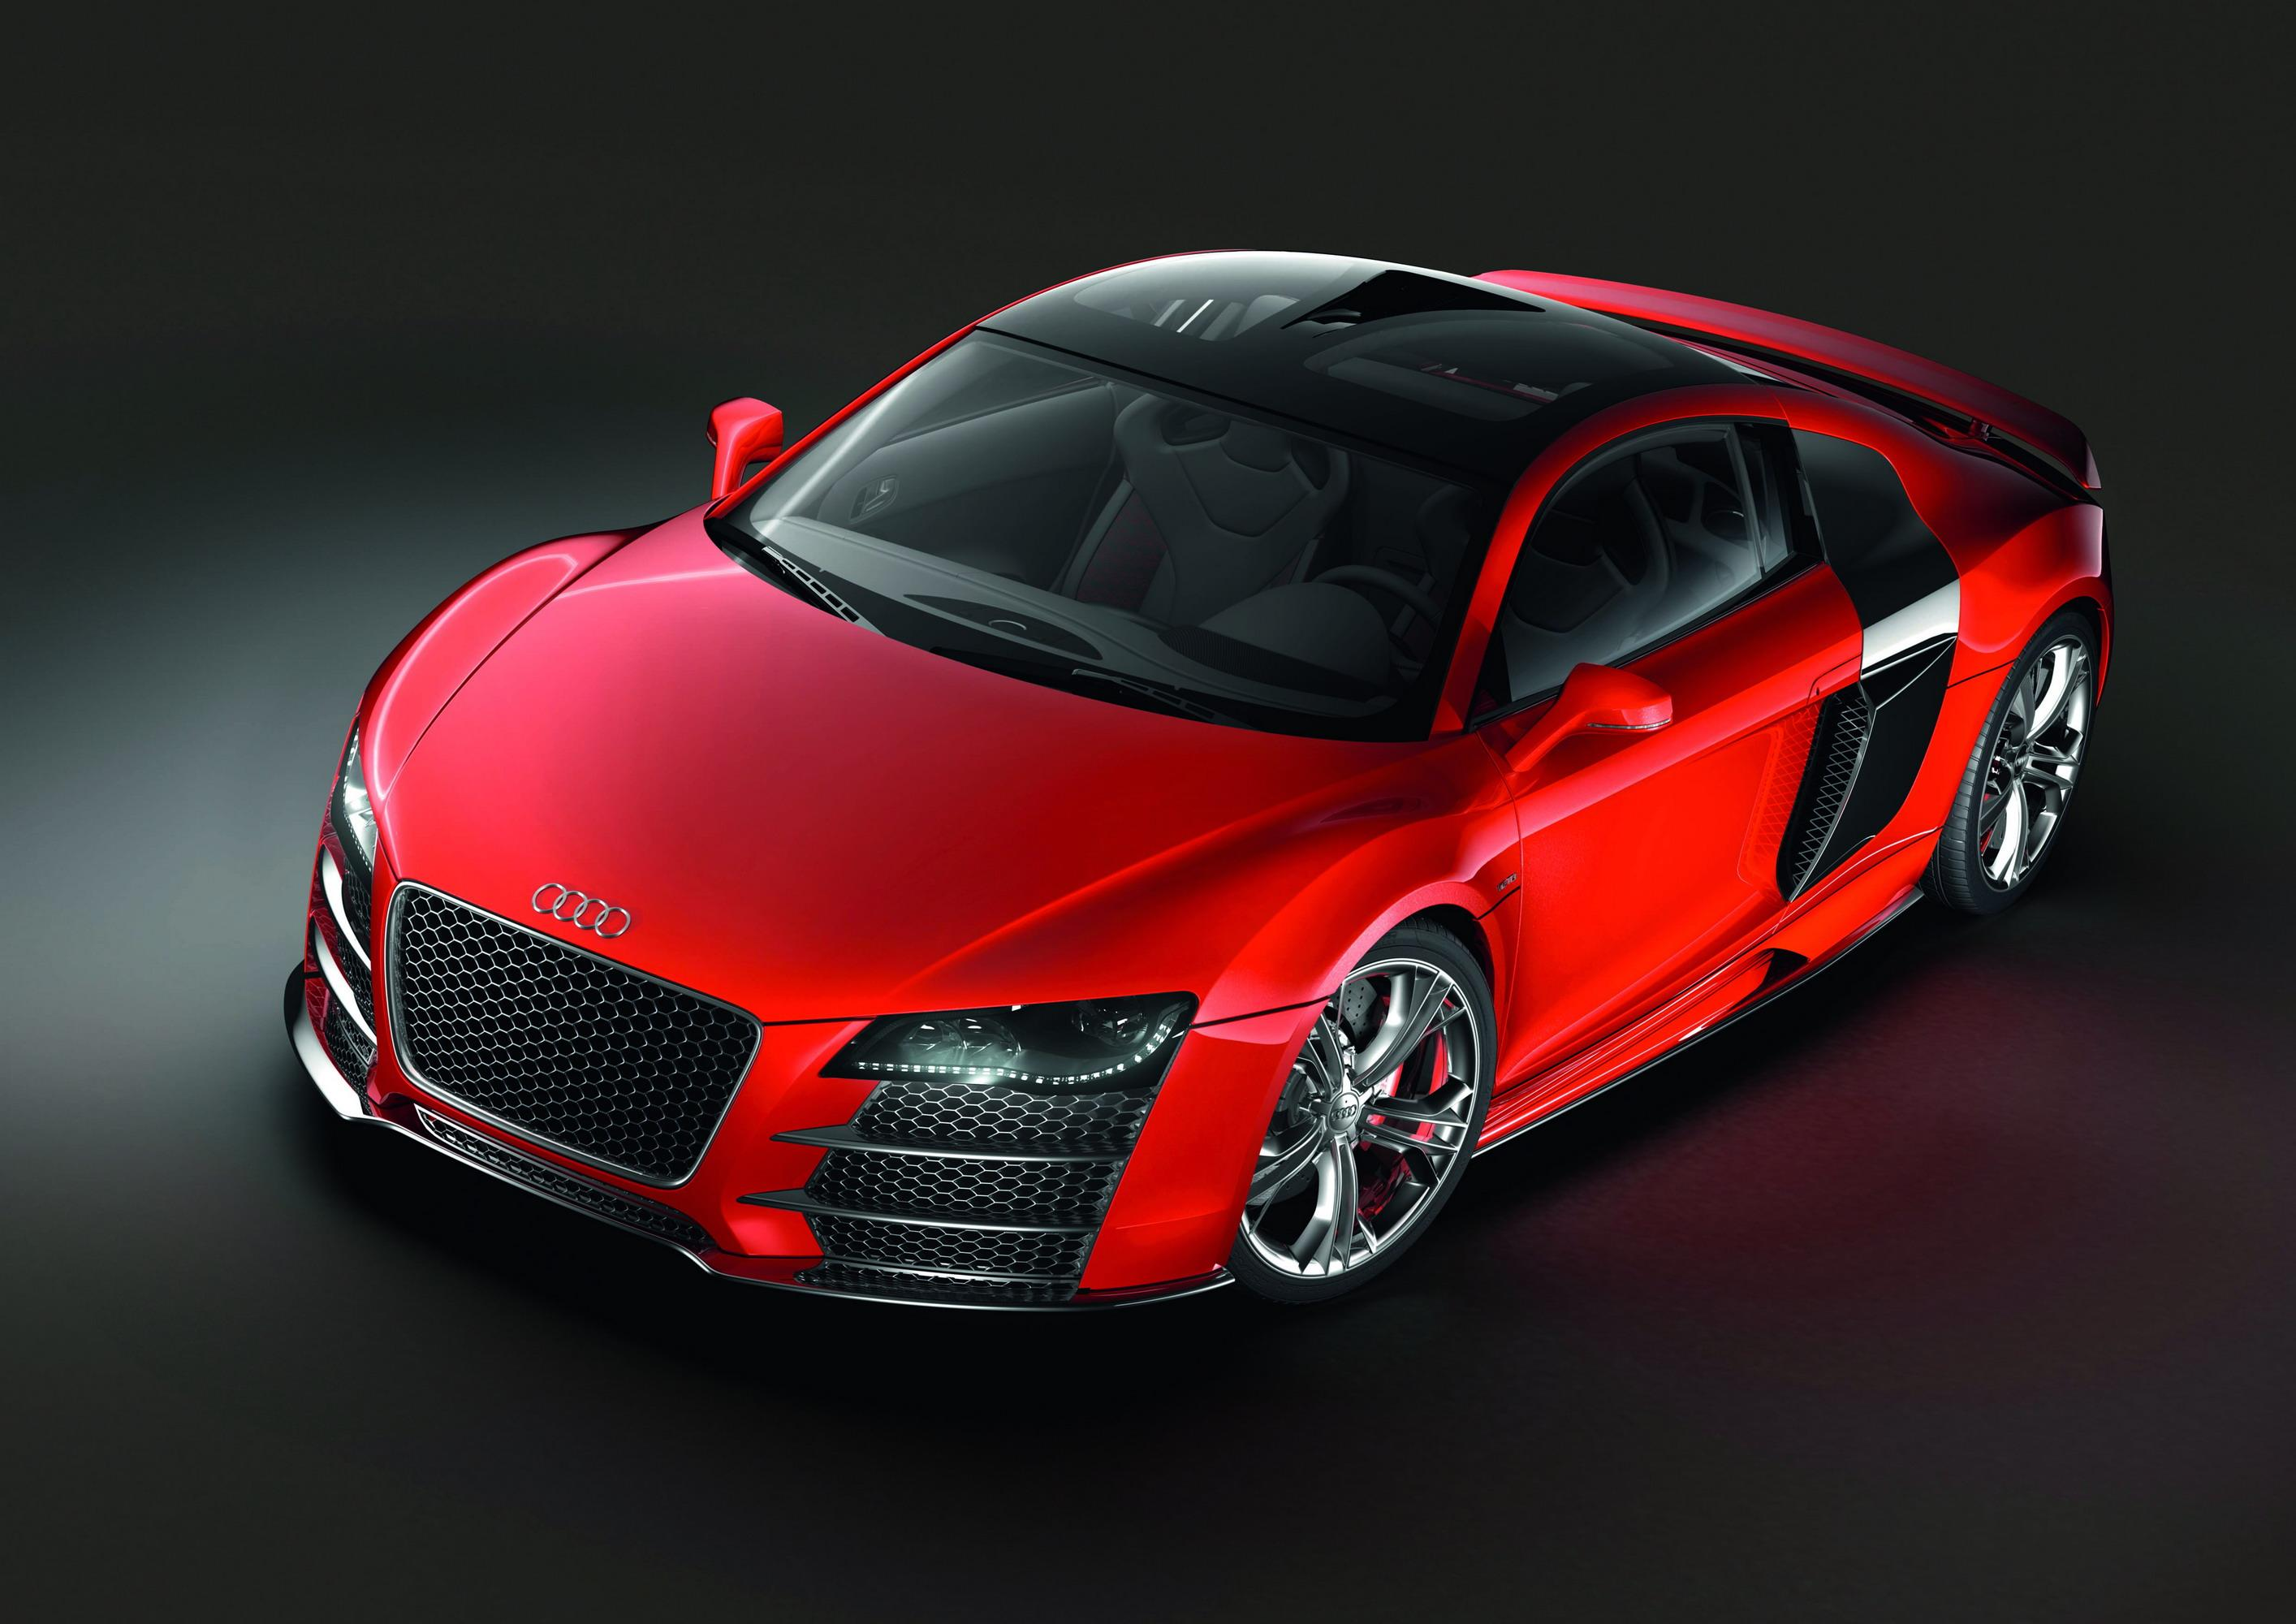 2008 Audi R8 TDI Le Mans Review - Top Speed